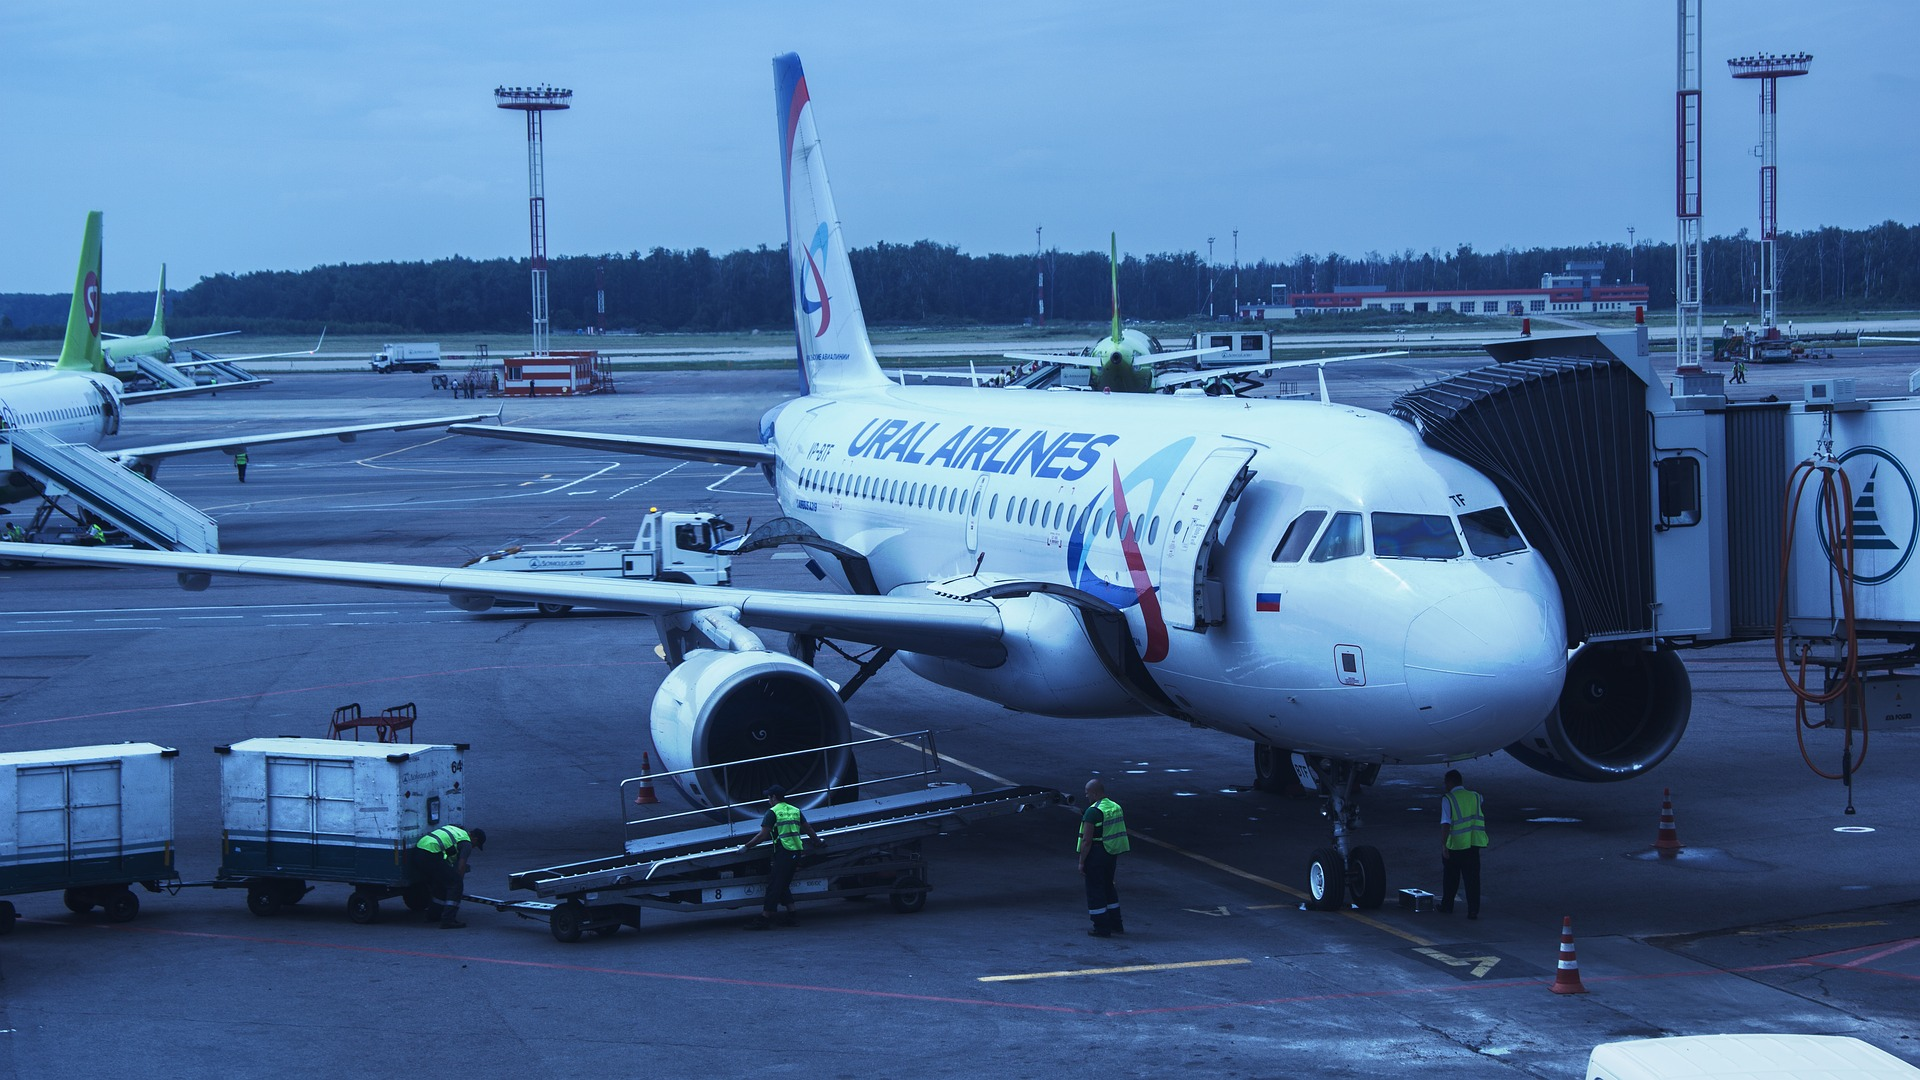 Ural Airlines, Airplane, Airport, Journey, Plane, HQ Photo